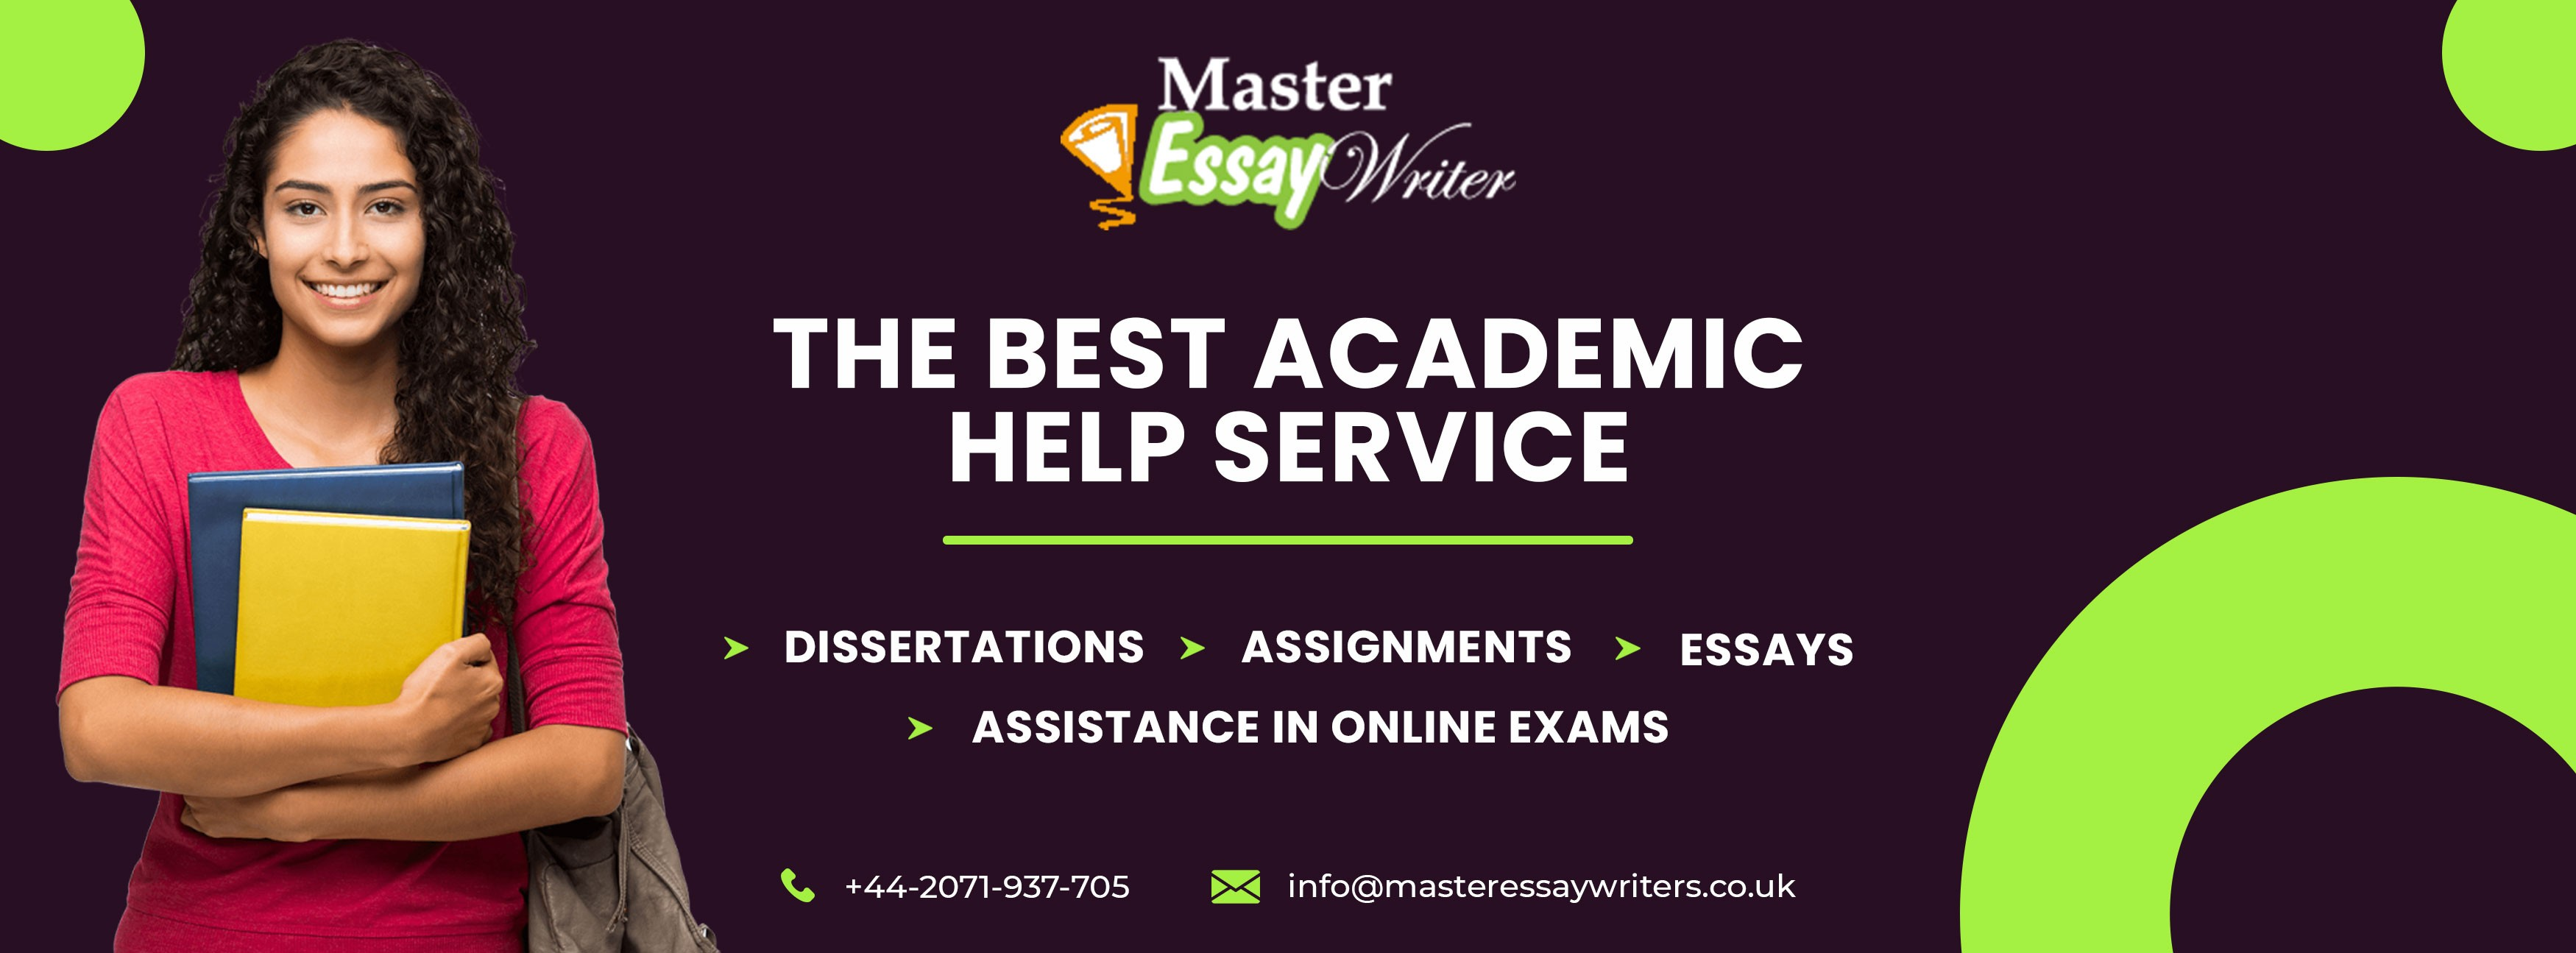 Popular essay writers services for masters english literature coursework introduction